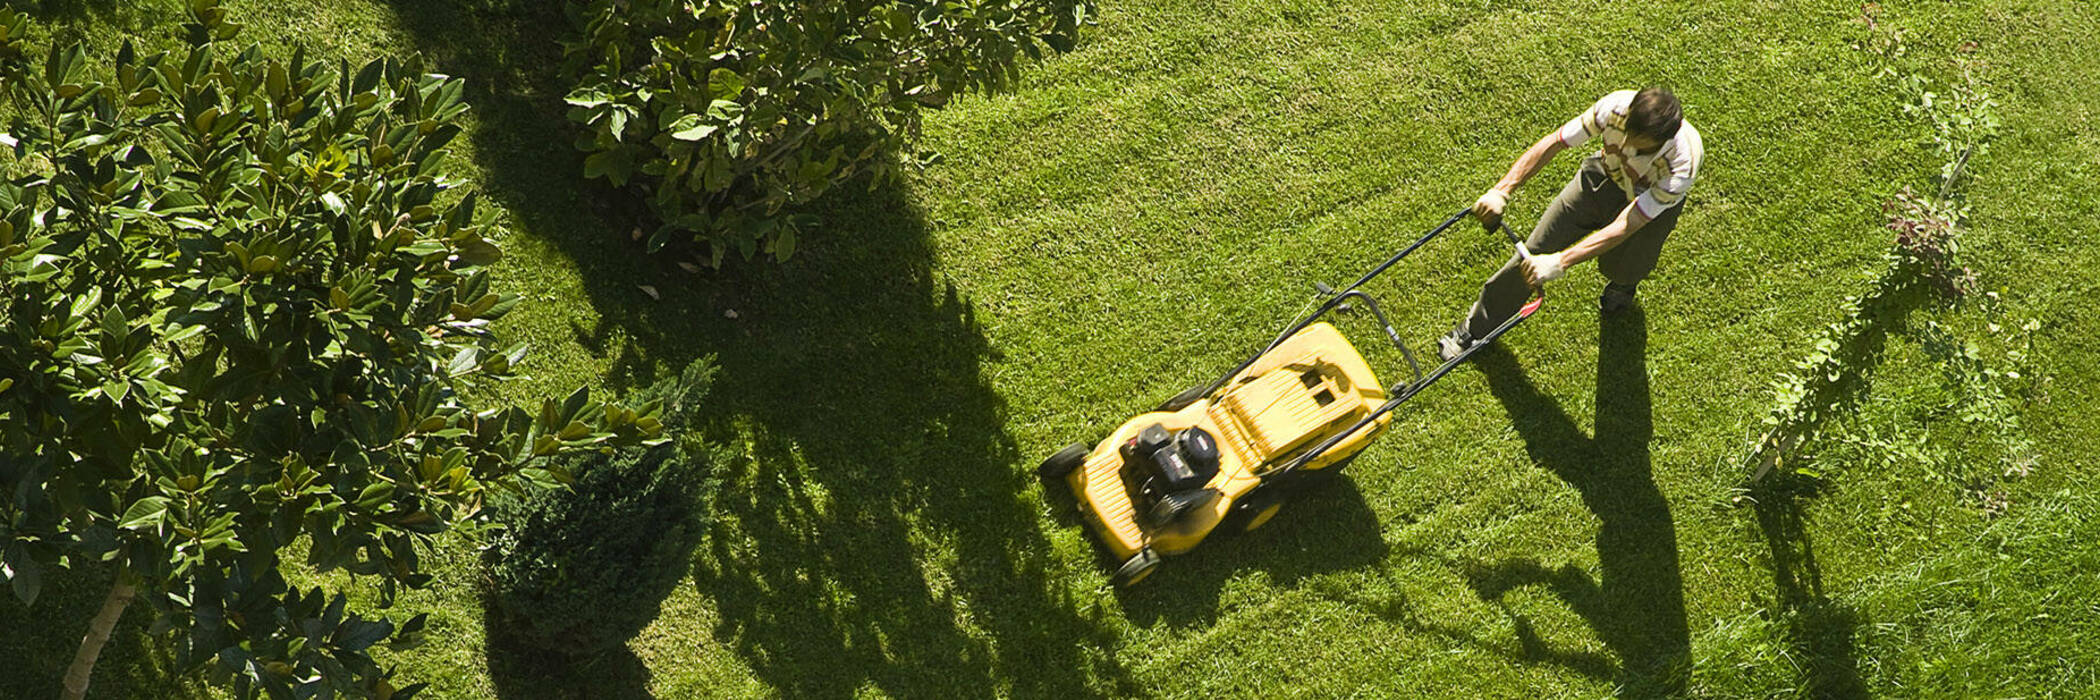 Aerial view of man with yellow lawnmower